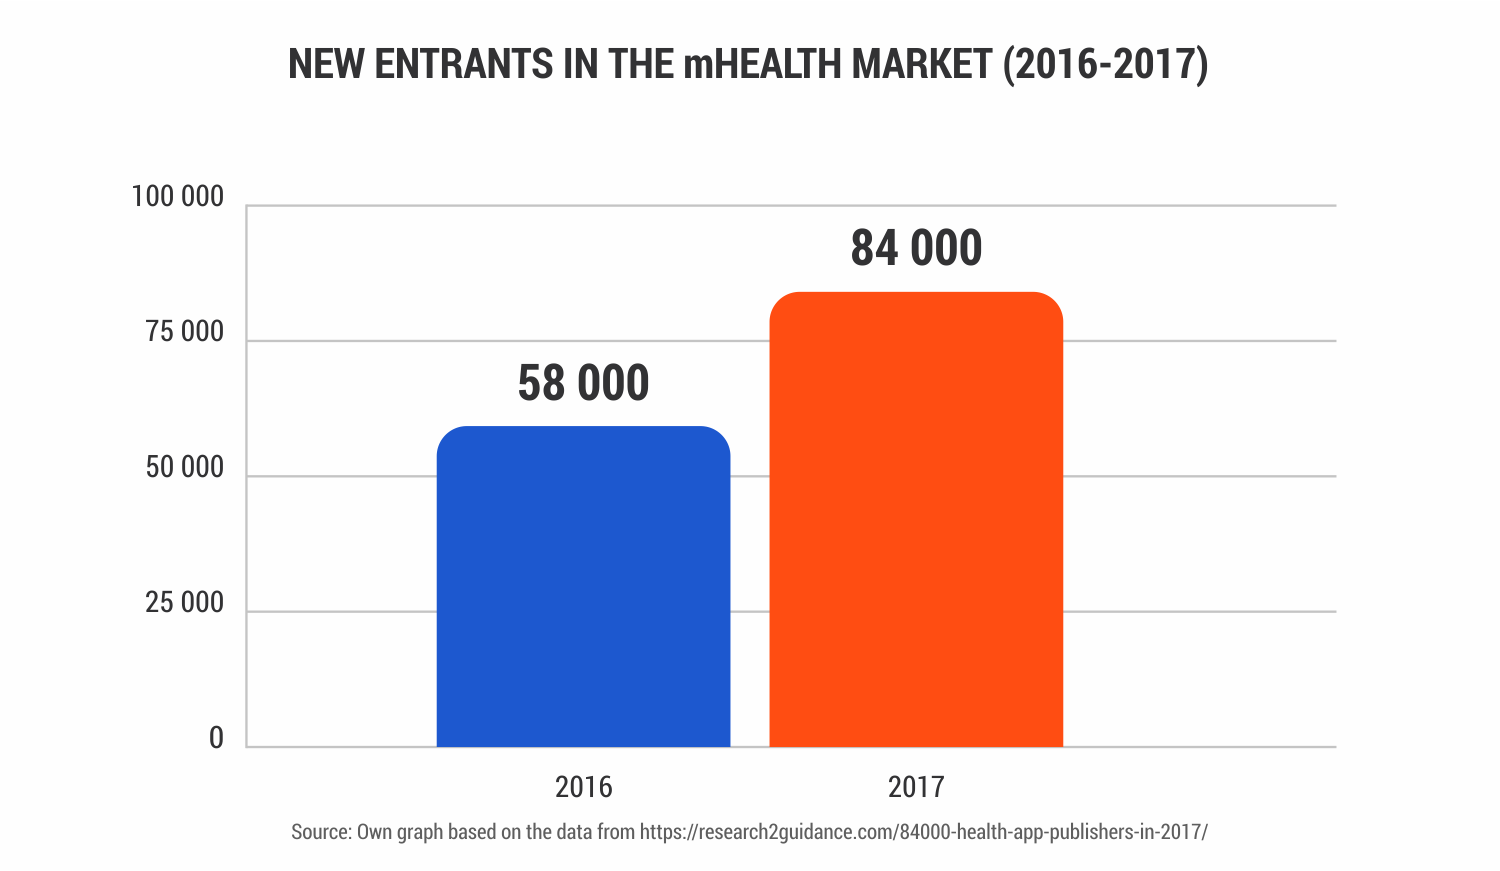 New-Entrants-in-the-mHealth-market